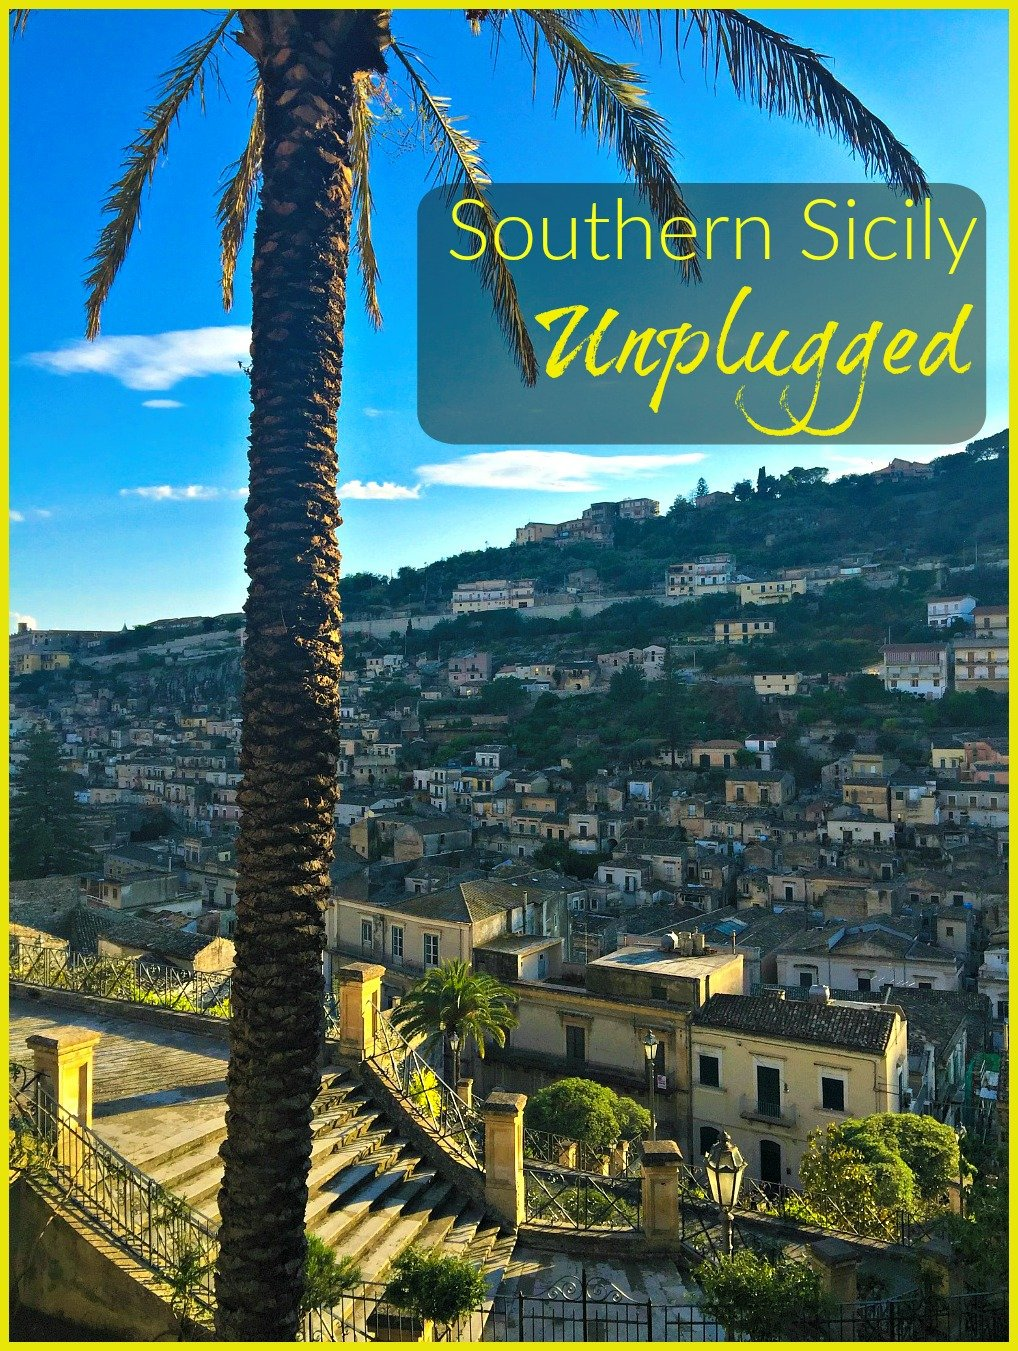 Southern Sicily Unplugged